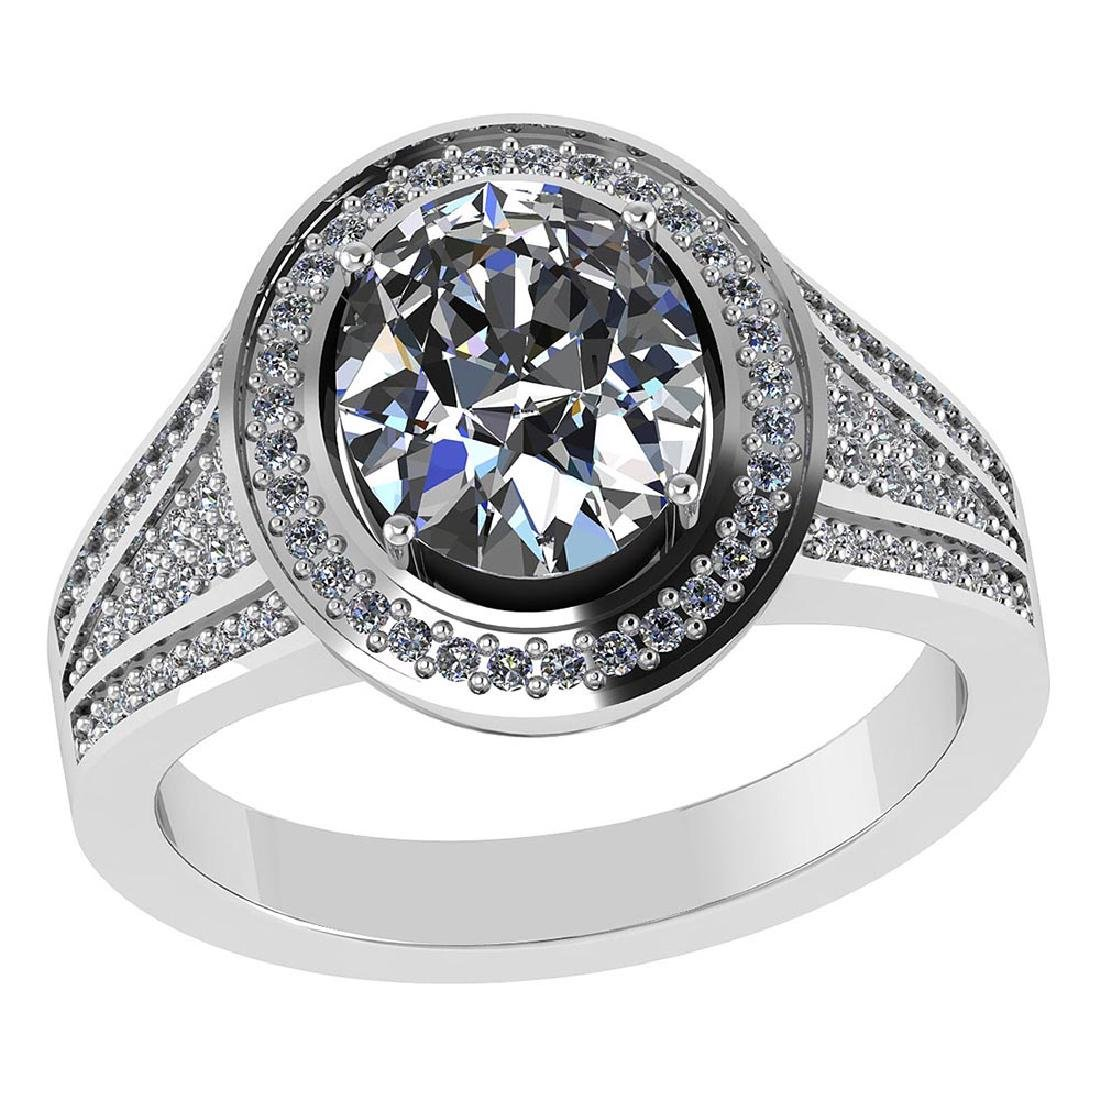 Certified 1.80 CTW Round and Cut Diamond 14K White Gold